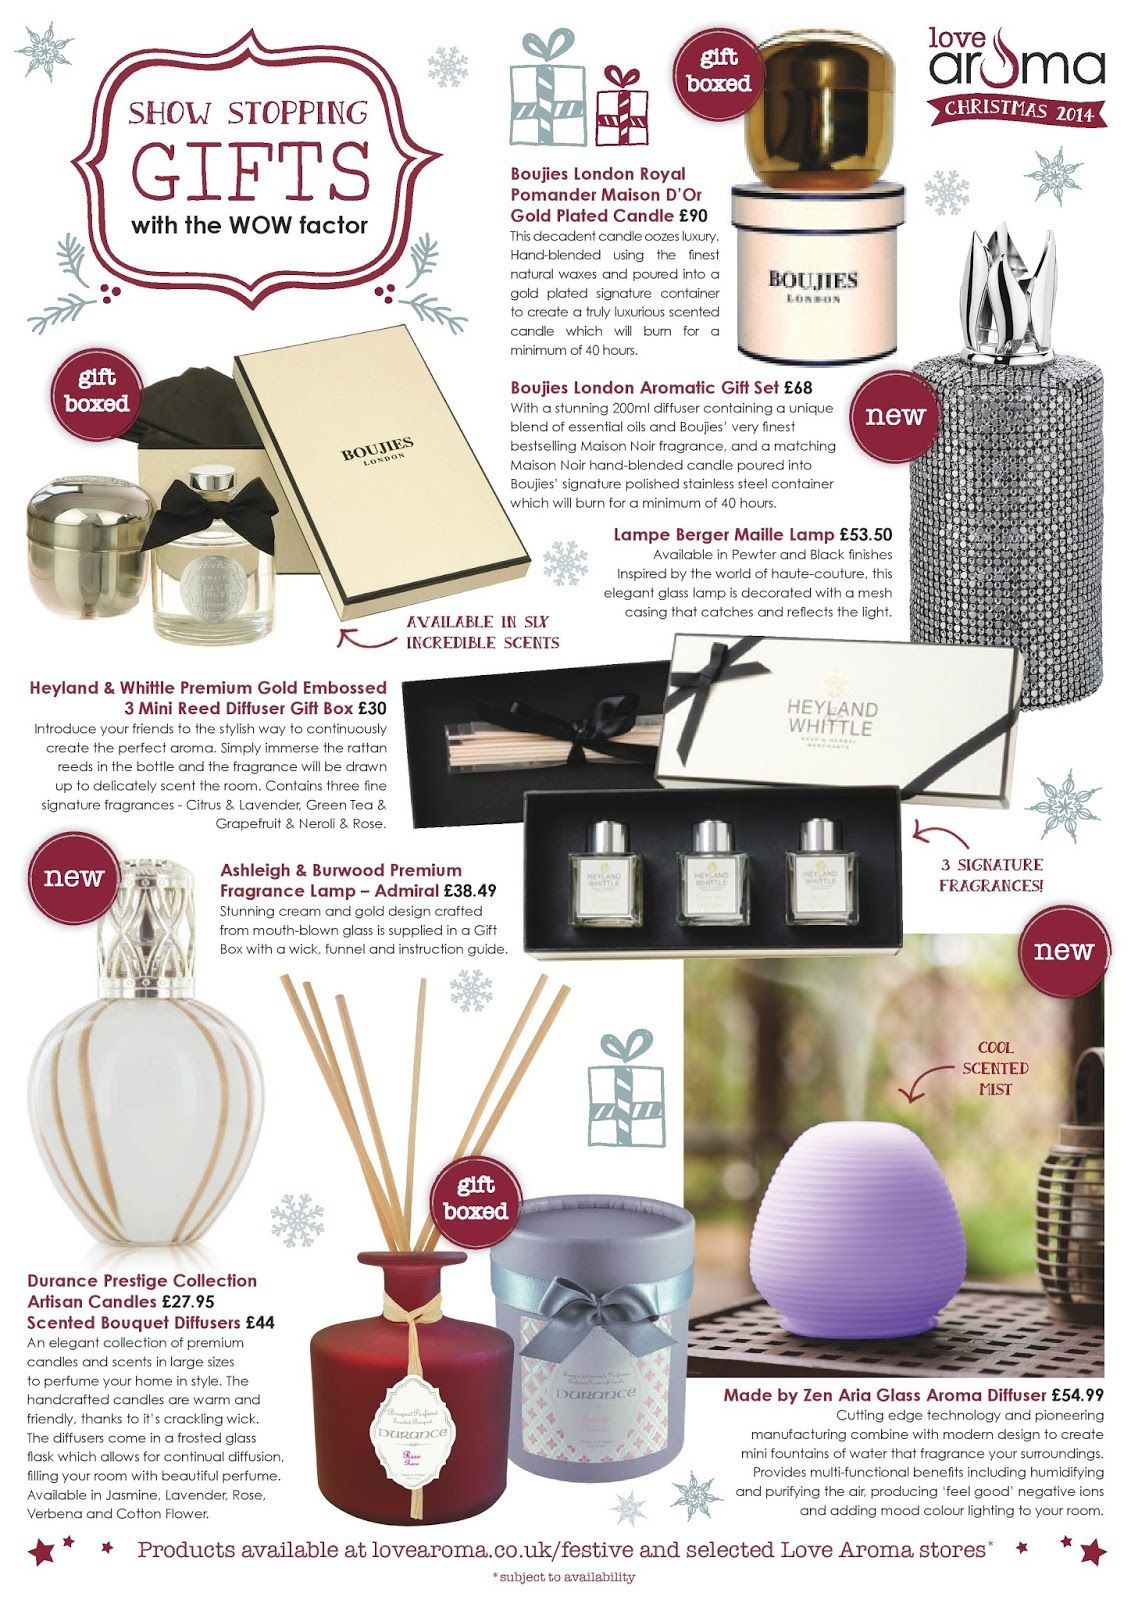 The Best Home Fragrance Products To Make Your Home Look, Feel And Smell  Festive This